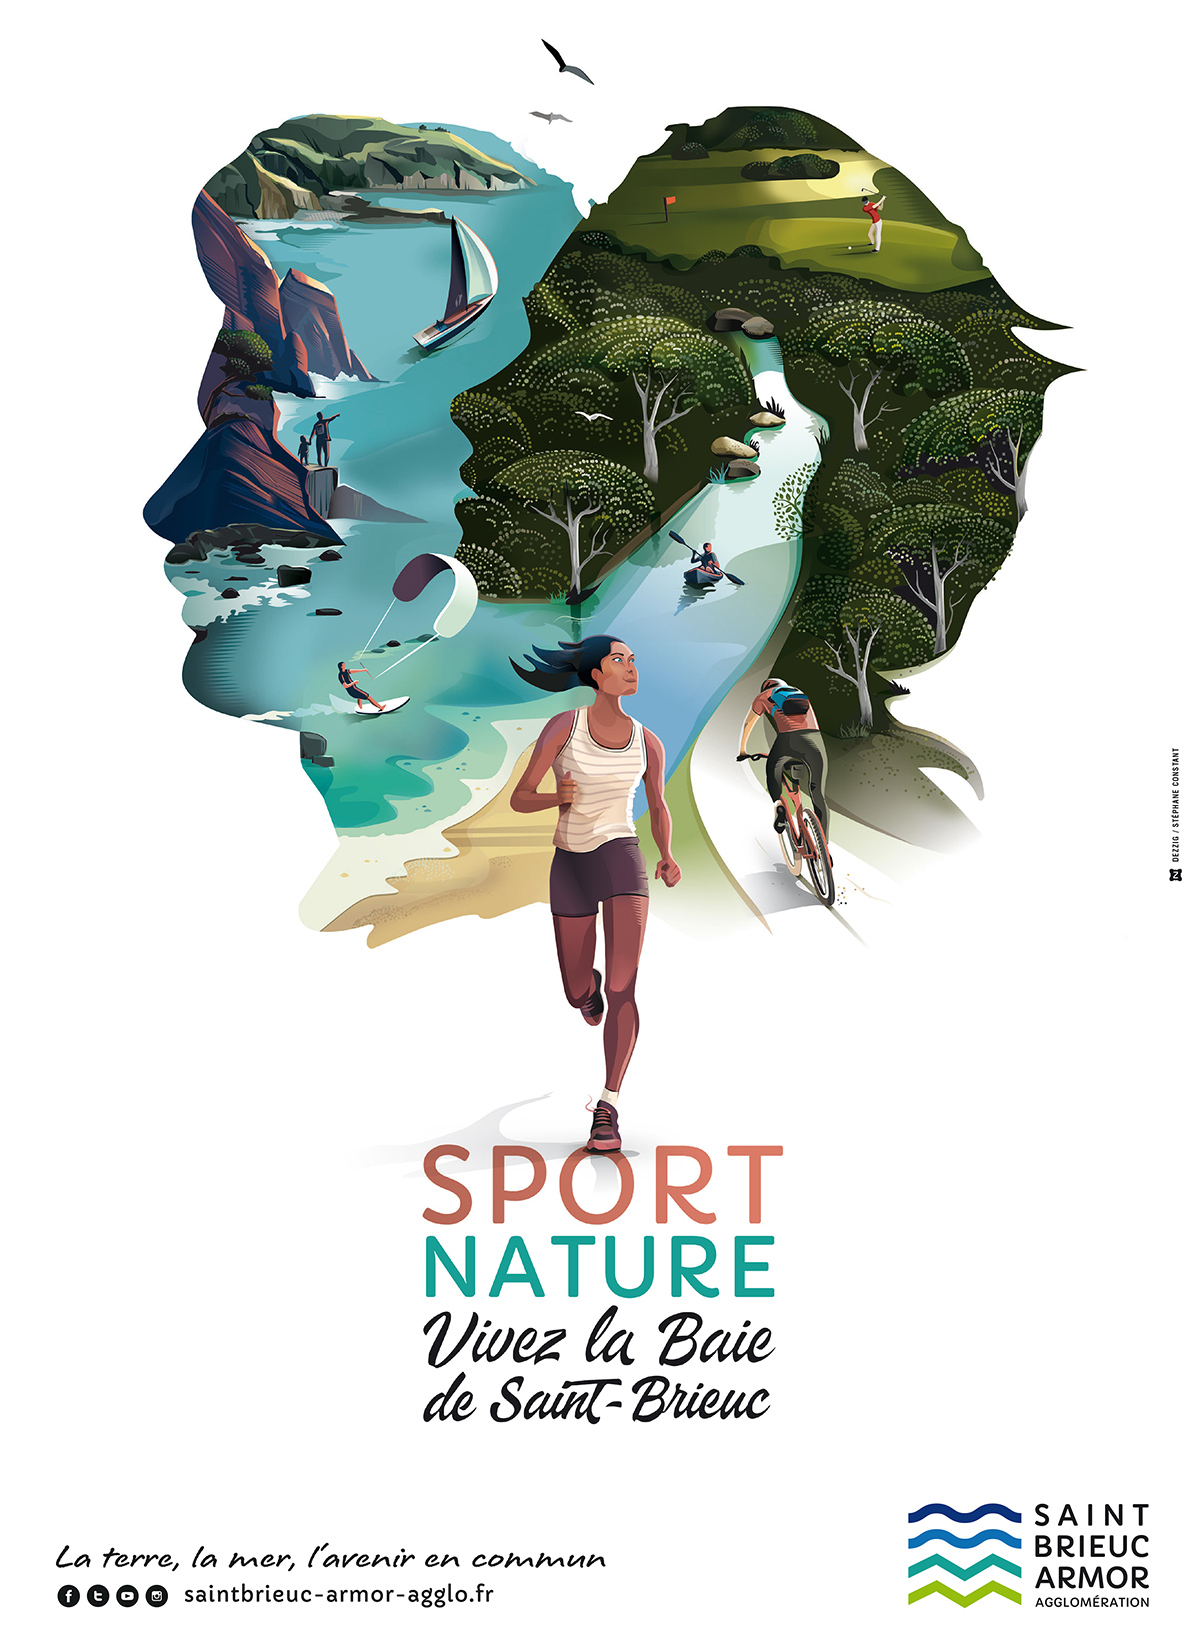 Illustration Sport Nature en Baie de Saint-Brieuc